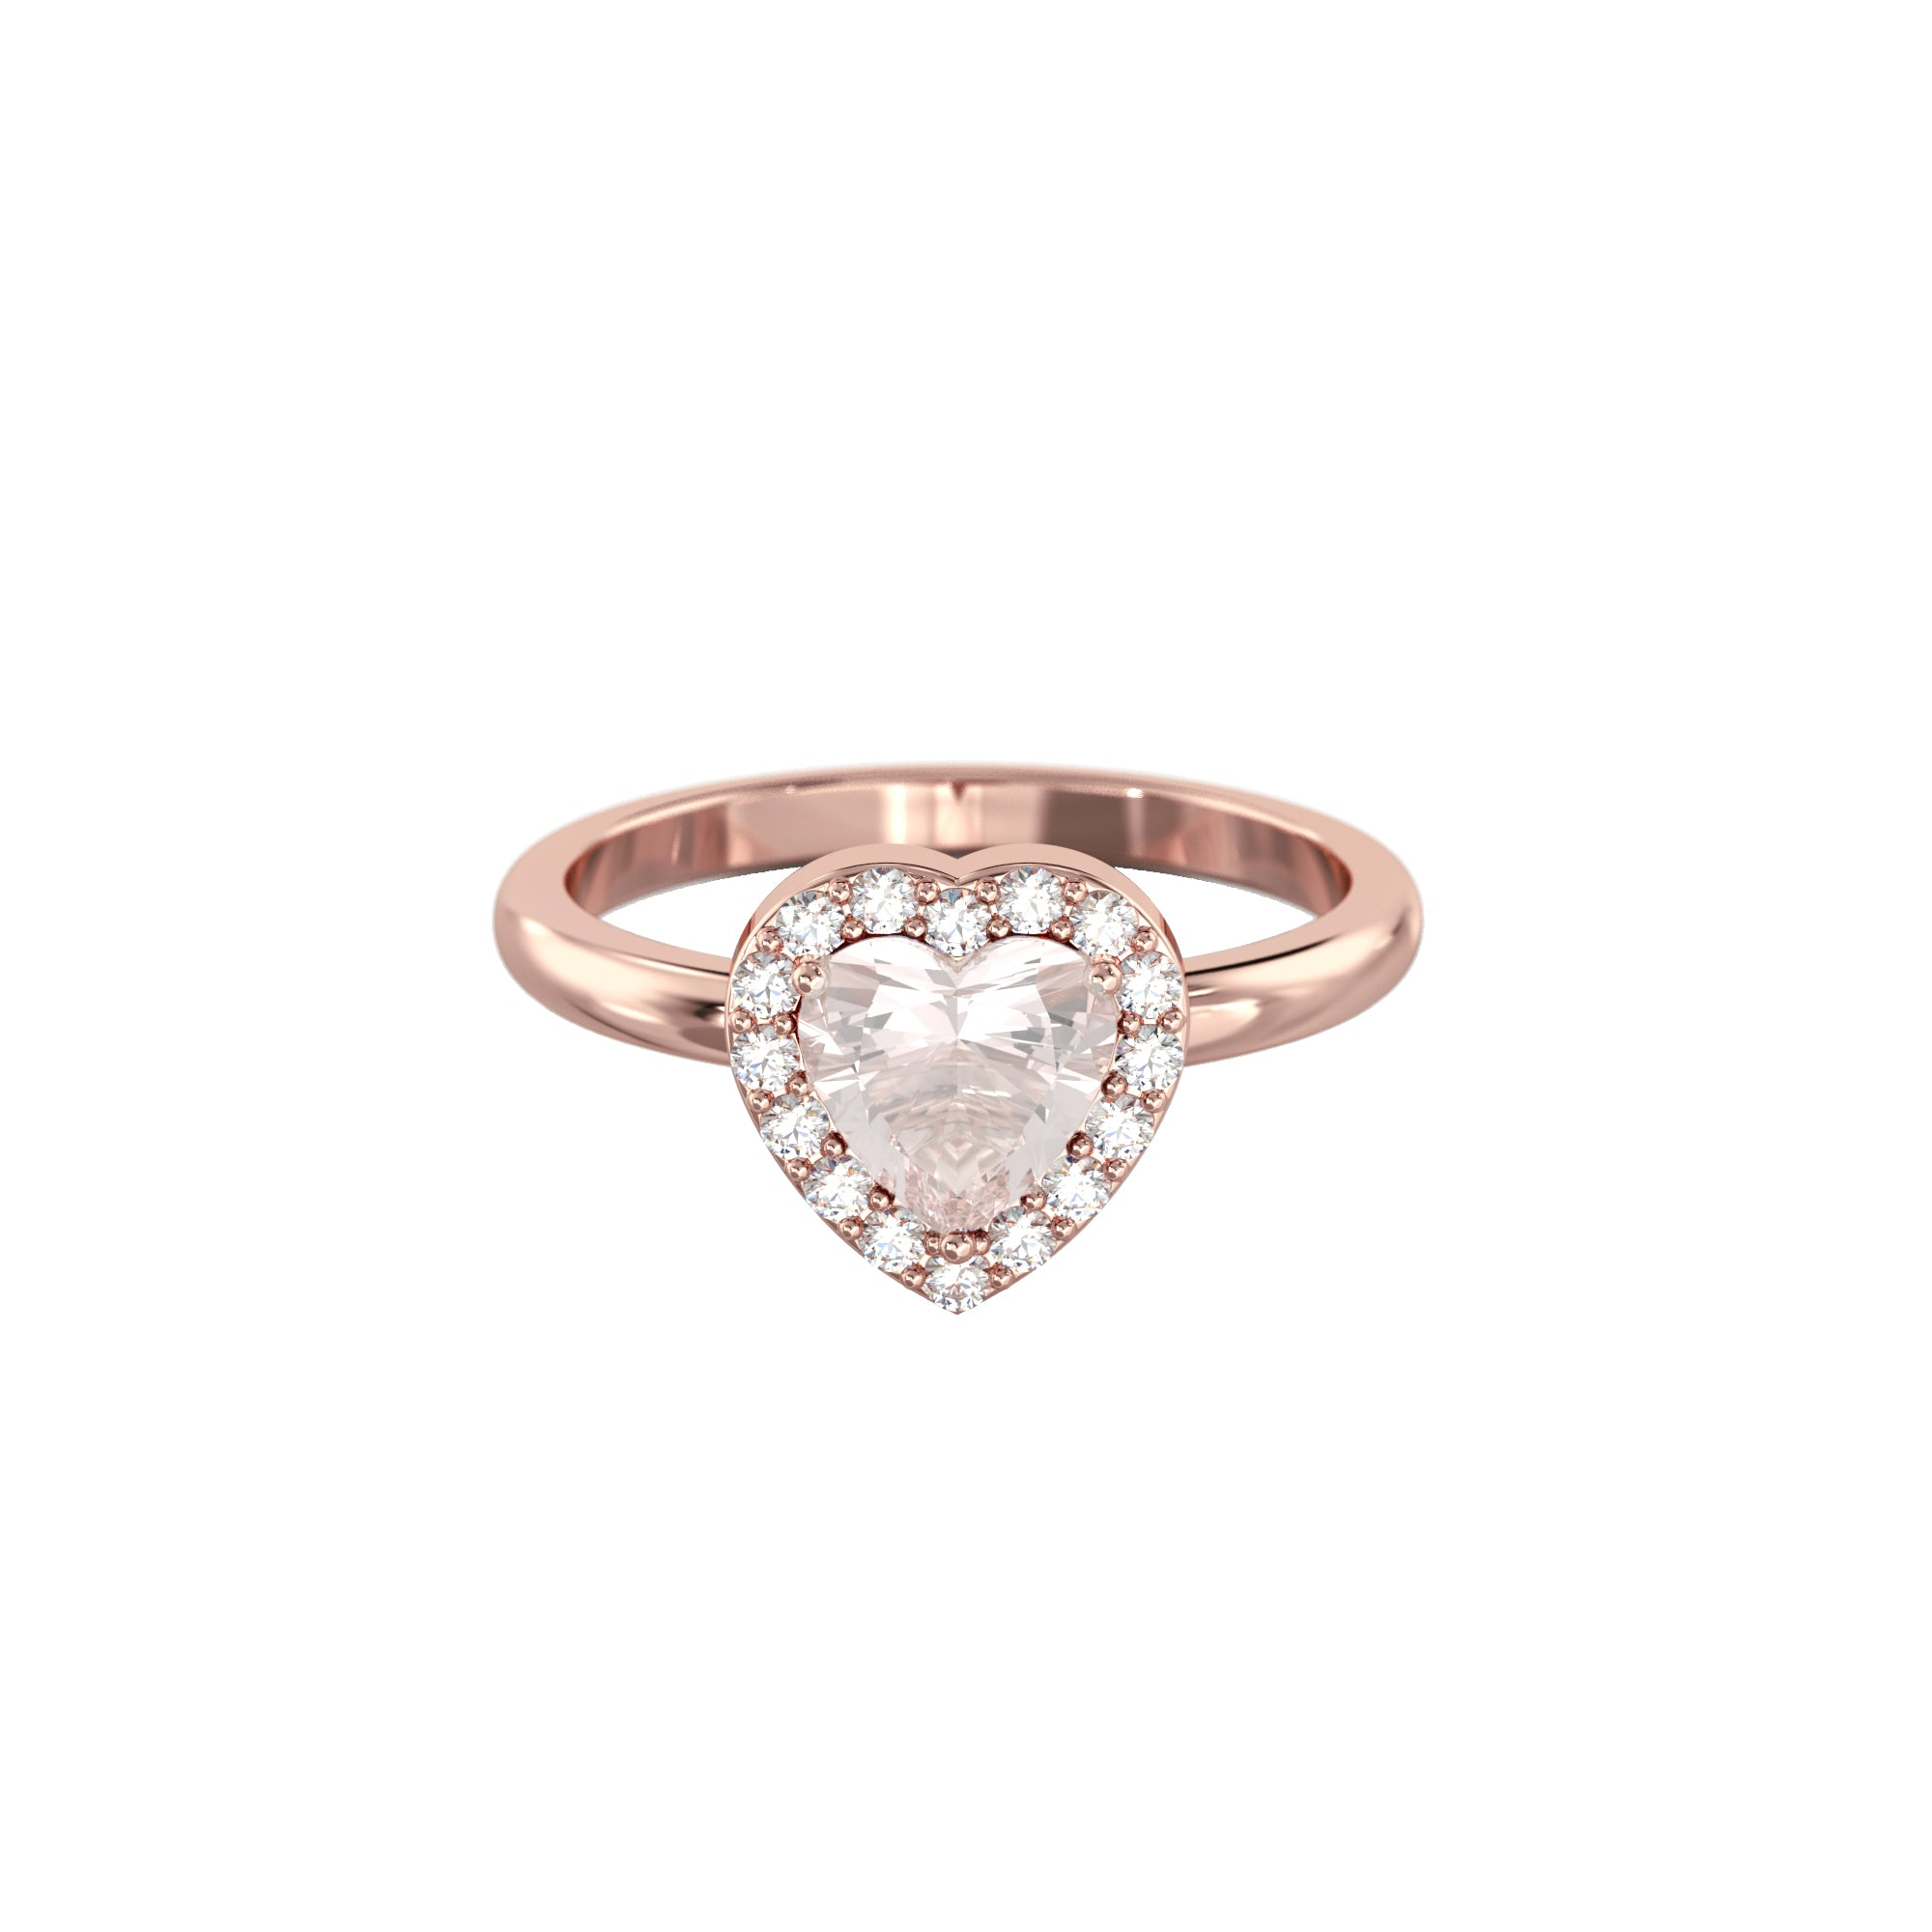 925 Silver Luxe Series Ring - Leanne (Rose Quartz) - Rose Gold Plated